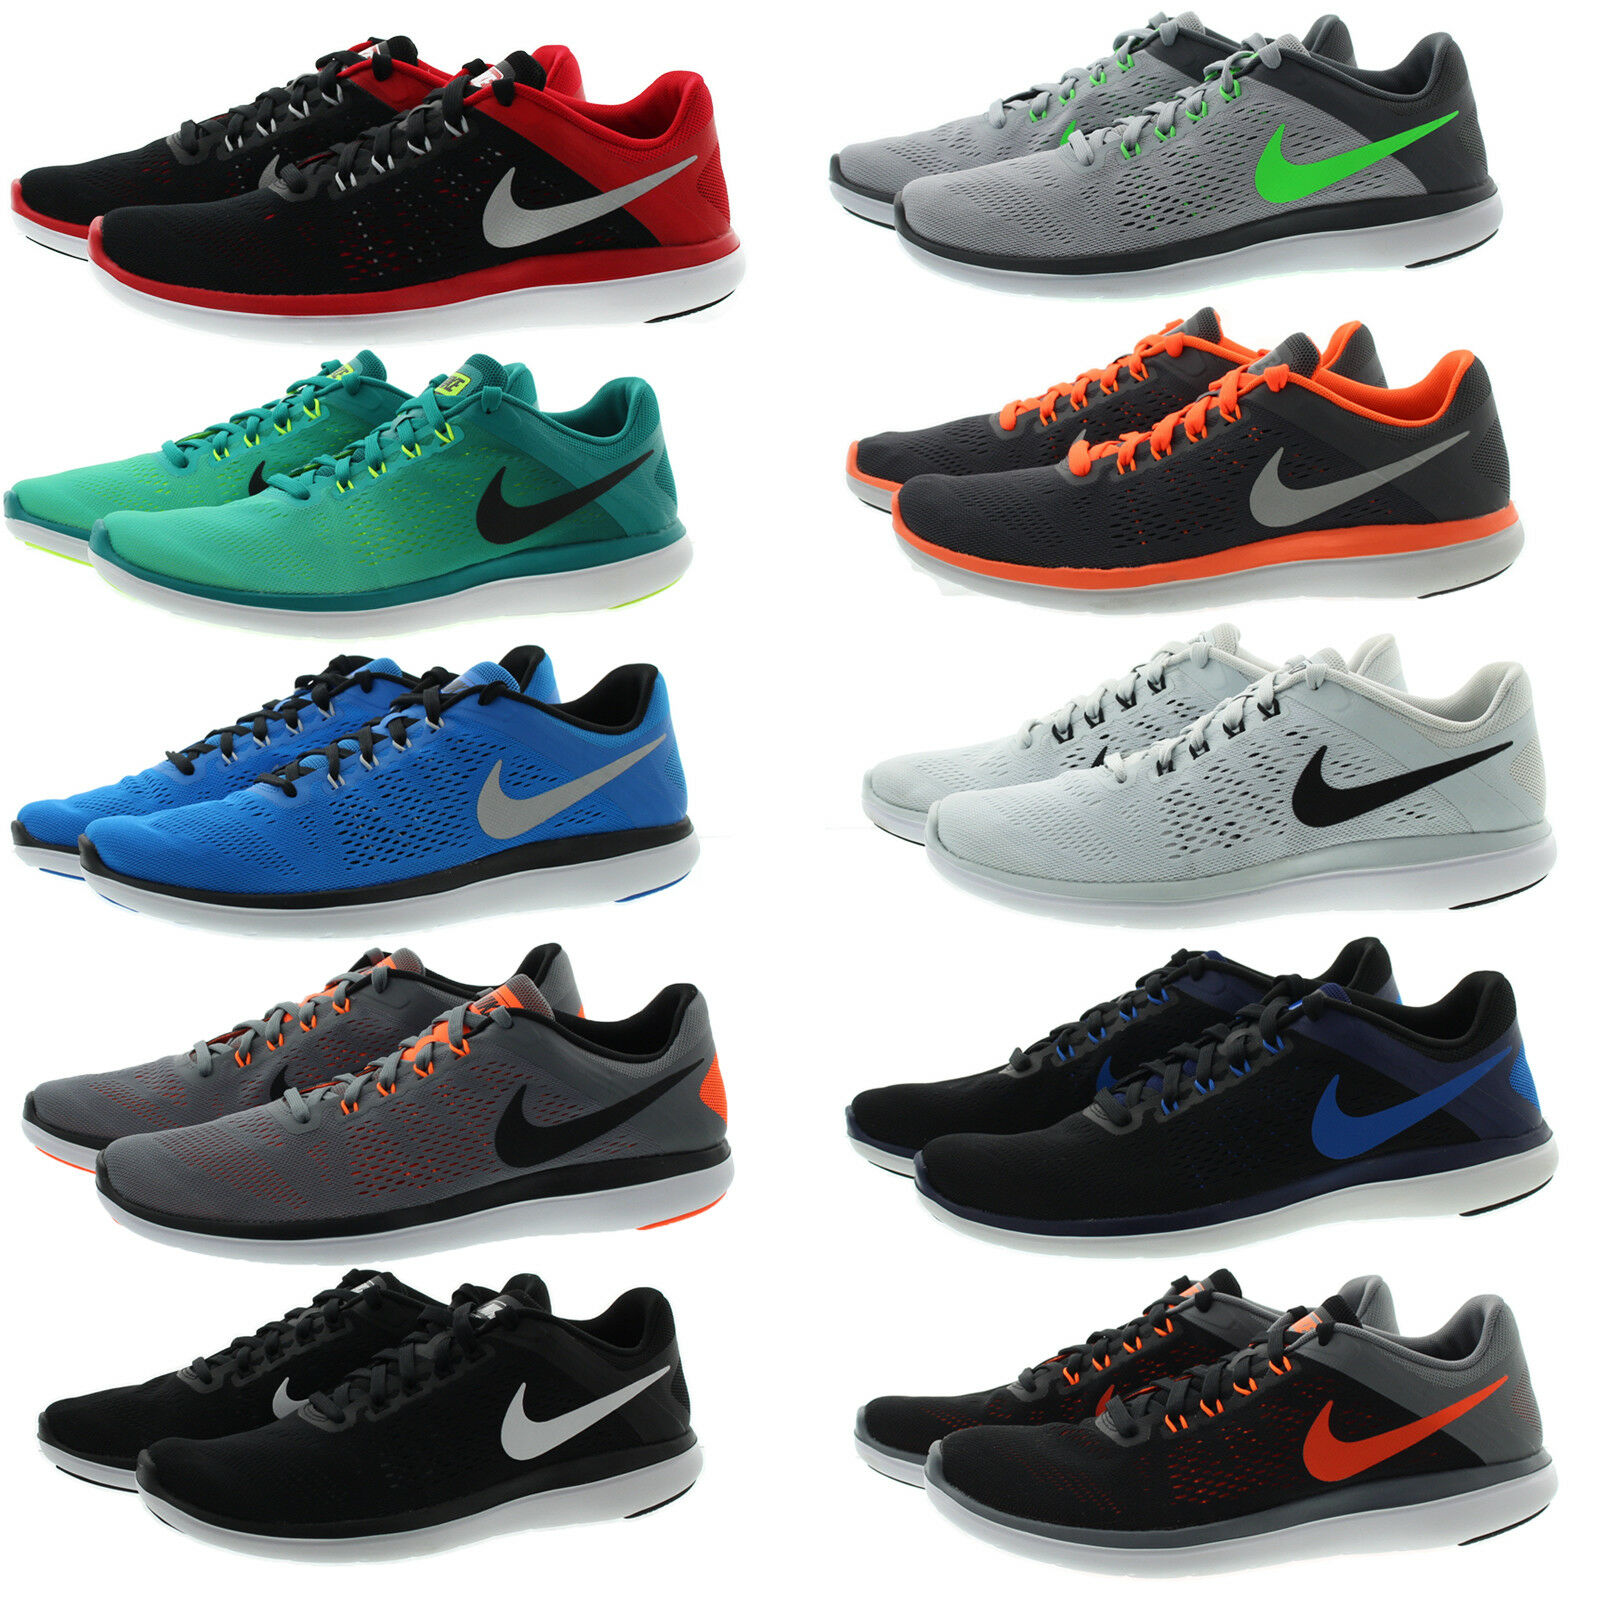 Nike 830369 Mens Flex RN Cross Training Performance Running shoes Sneakers